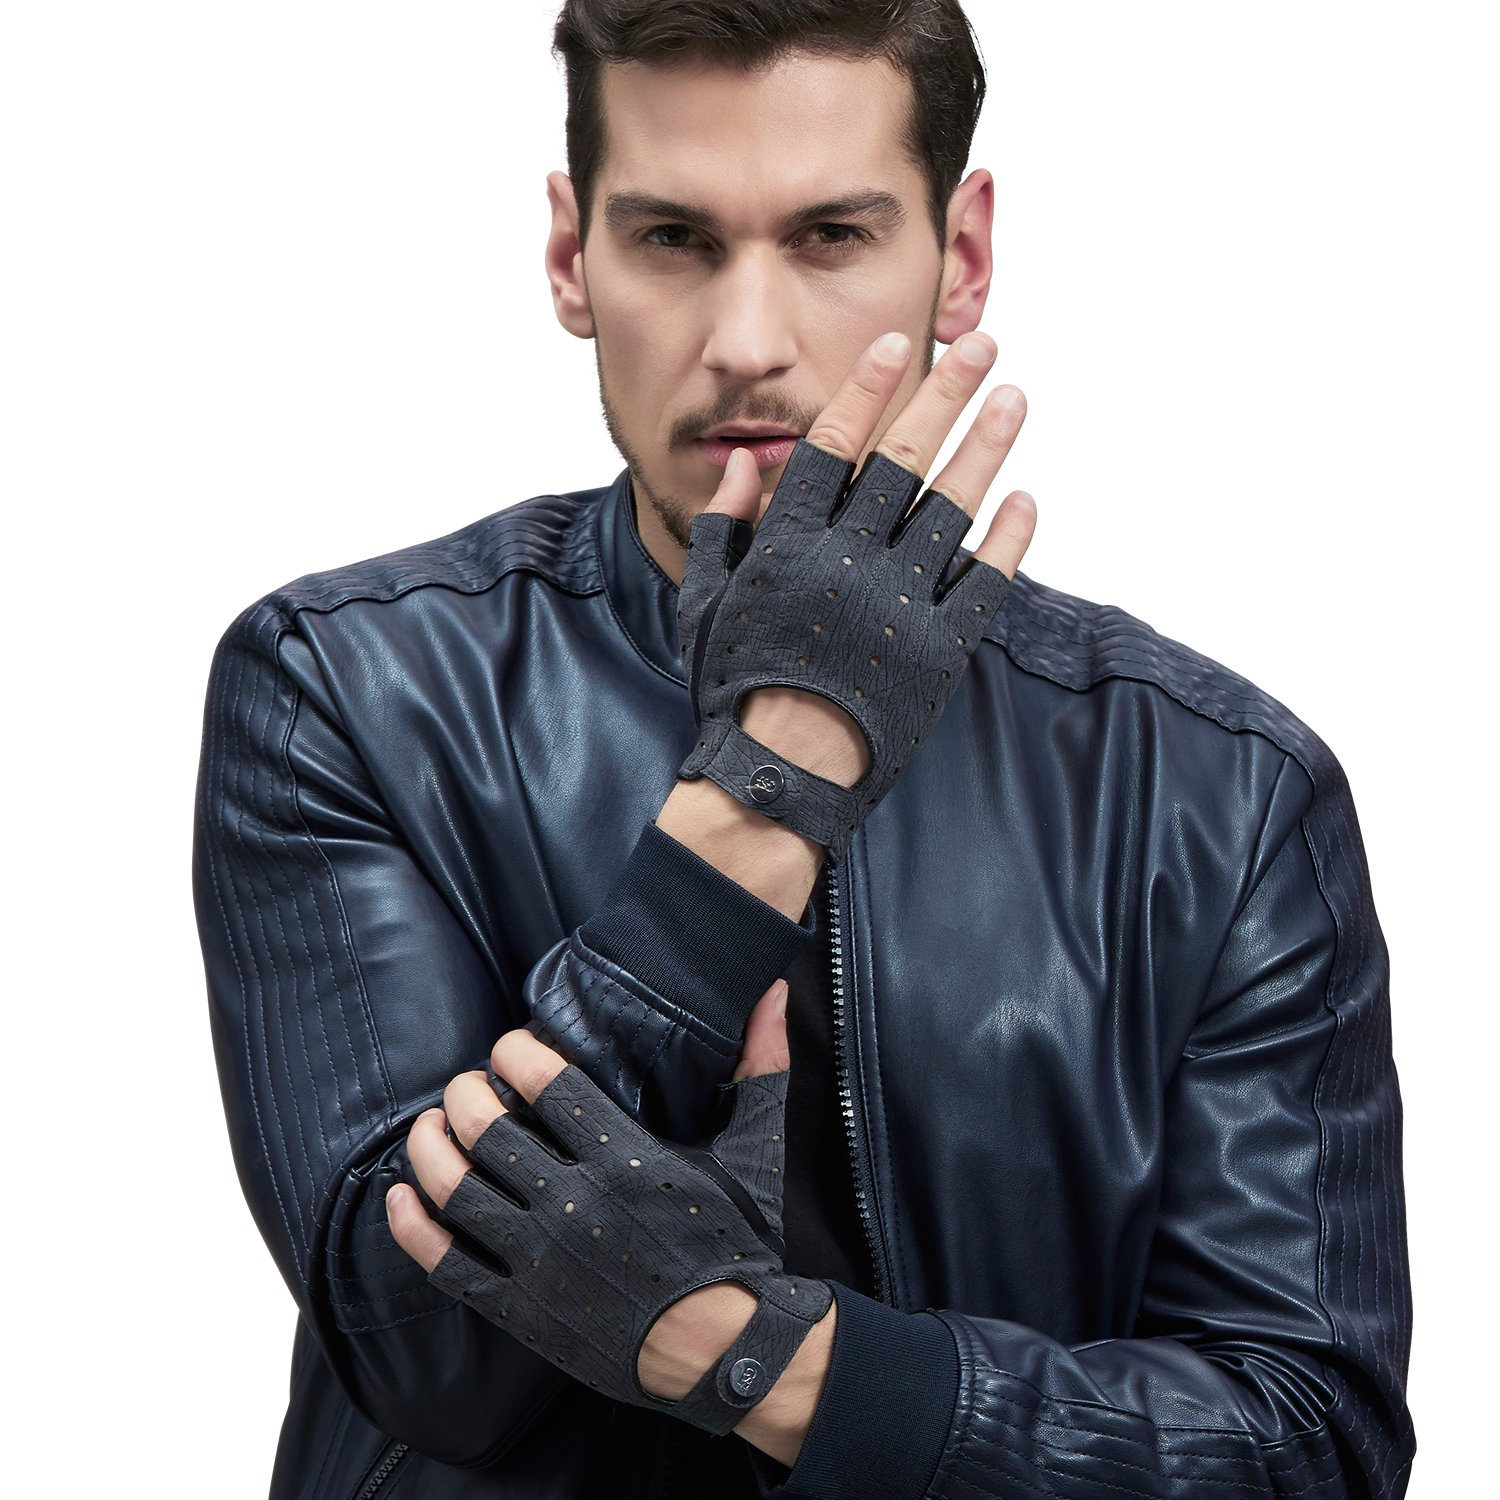 GSG Mens Classic Fingerless Gloves Perforated Half Finger Driving Motorcycle Unlined Snap Gloves Fitness Cycling Nice Gifts Black 11